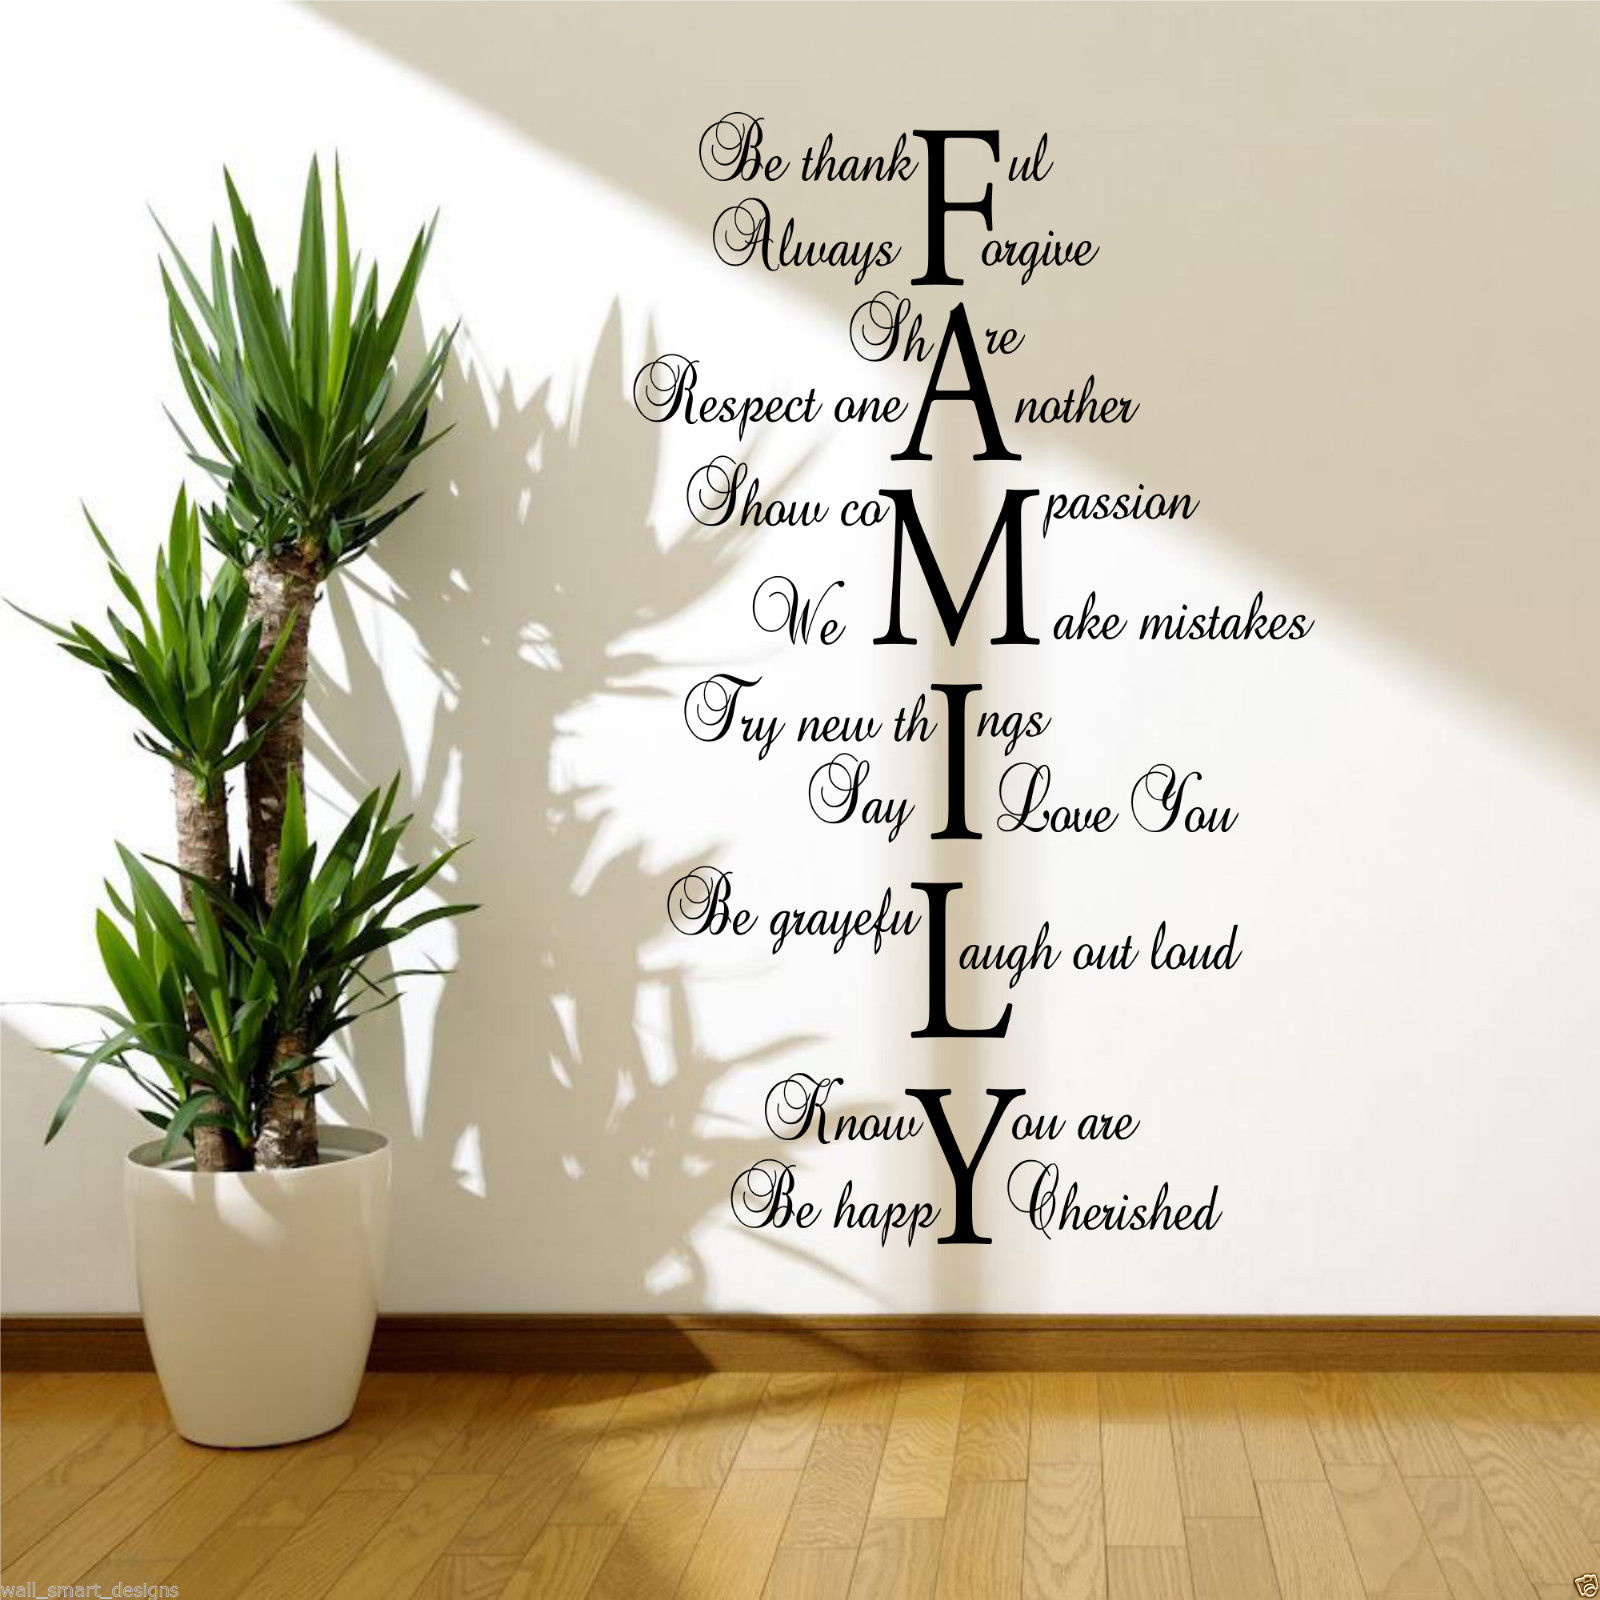 Love Life Family Quotes Custom Family Love Life Wall Art Sticker Quote Room Decal Mural Transfer